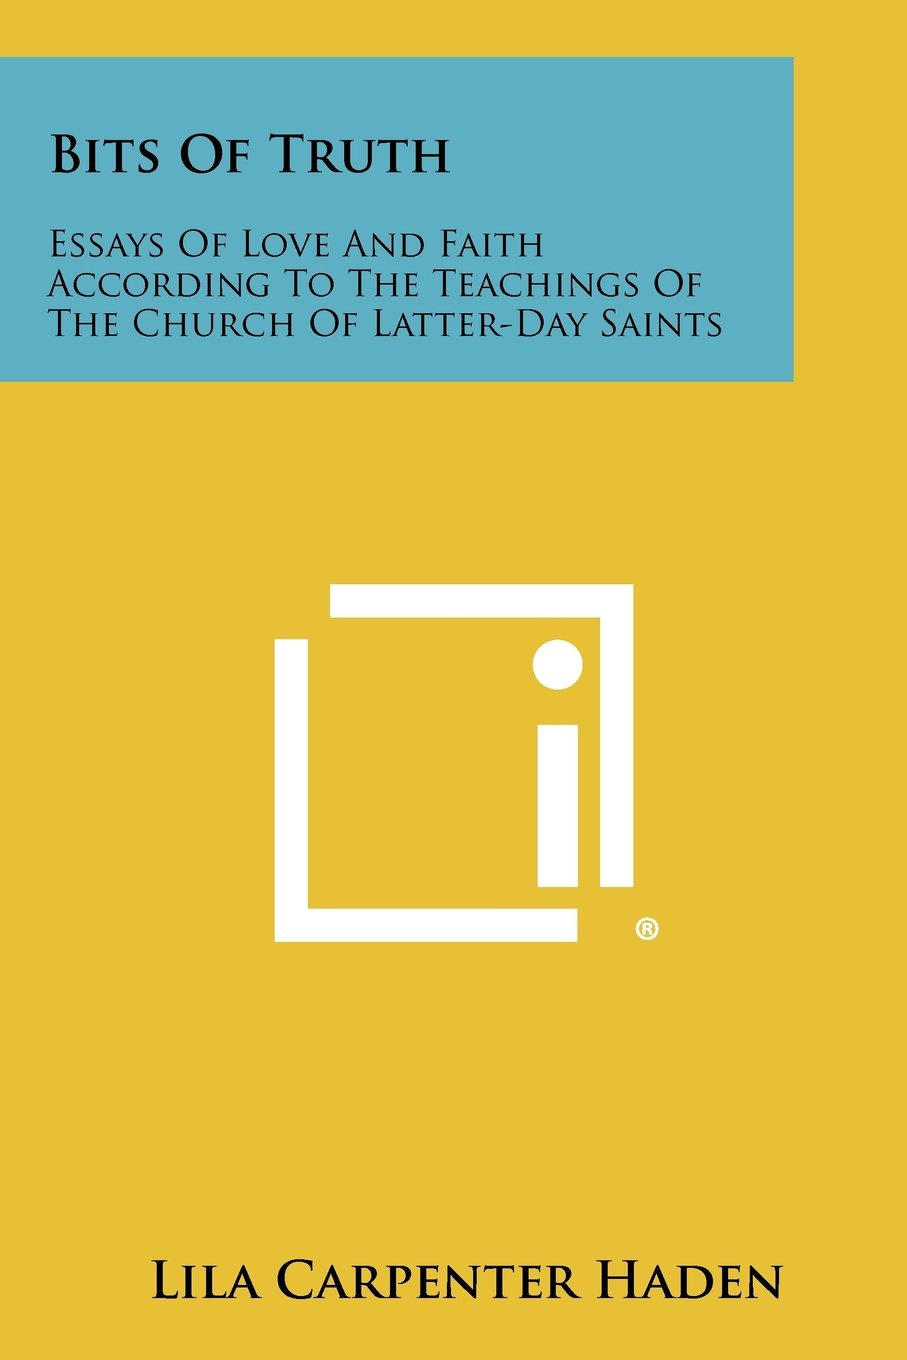 Download Bits of Truth: Essays of Love and Faith According to the Teachings of the Church of Latter-Day Saints PDF